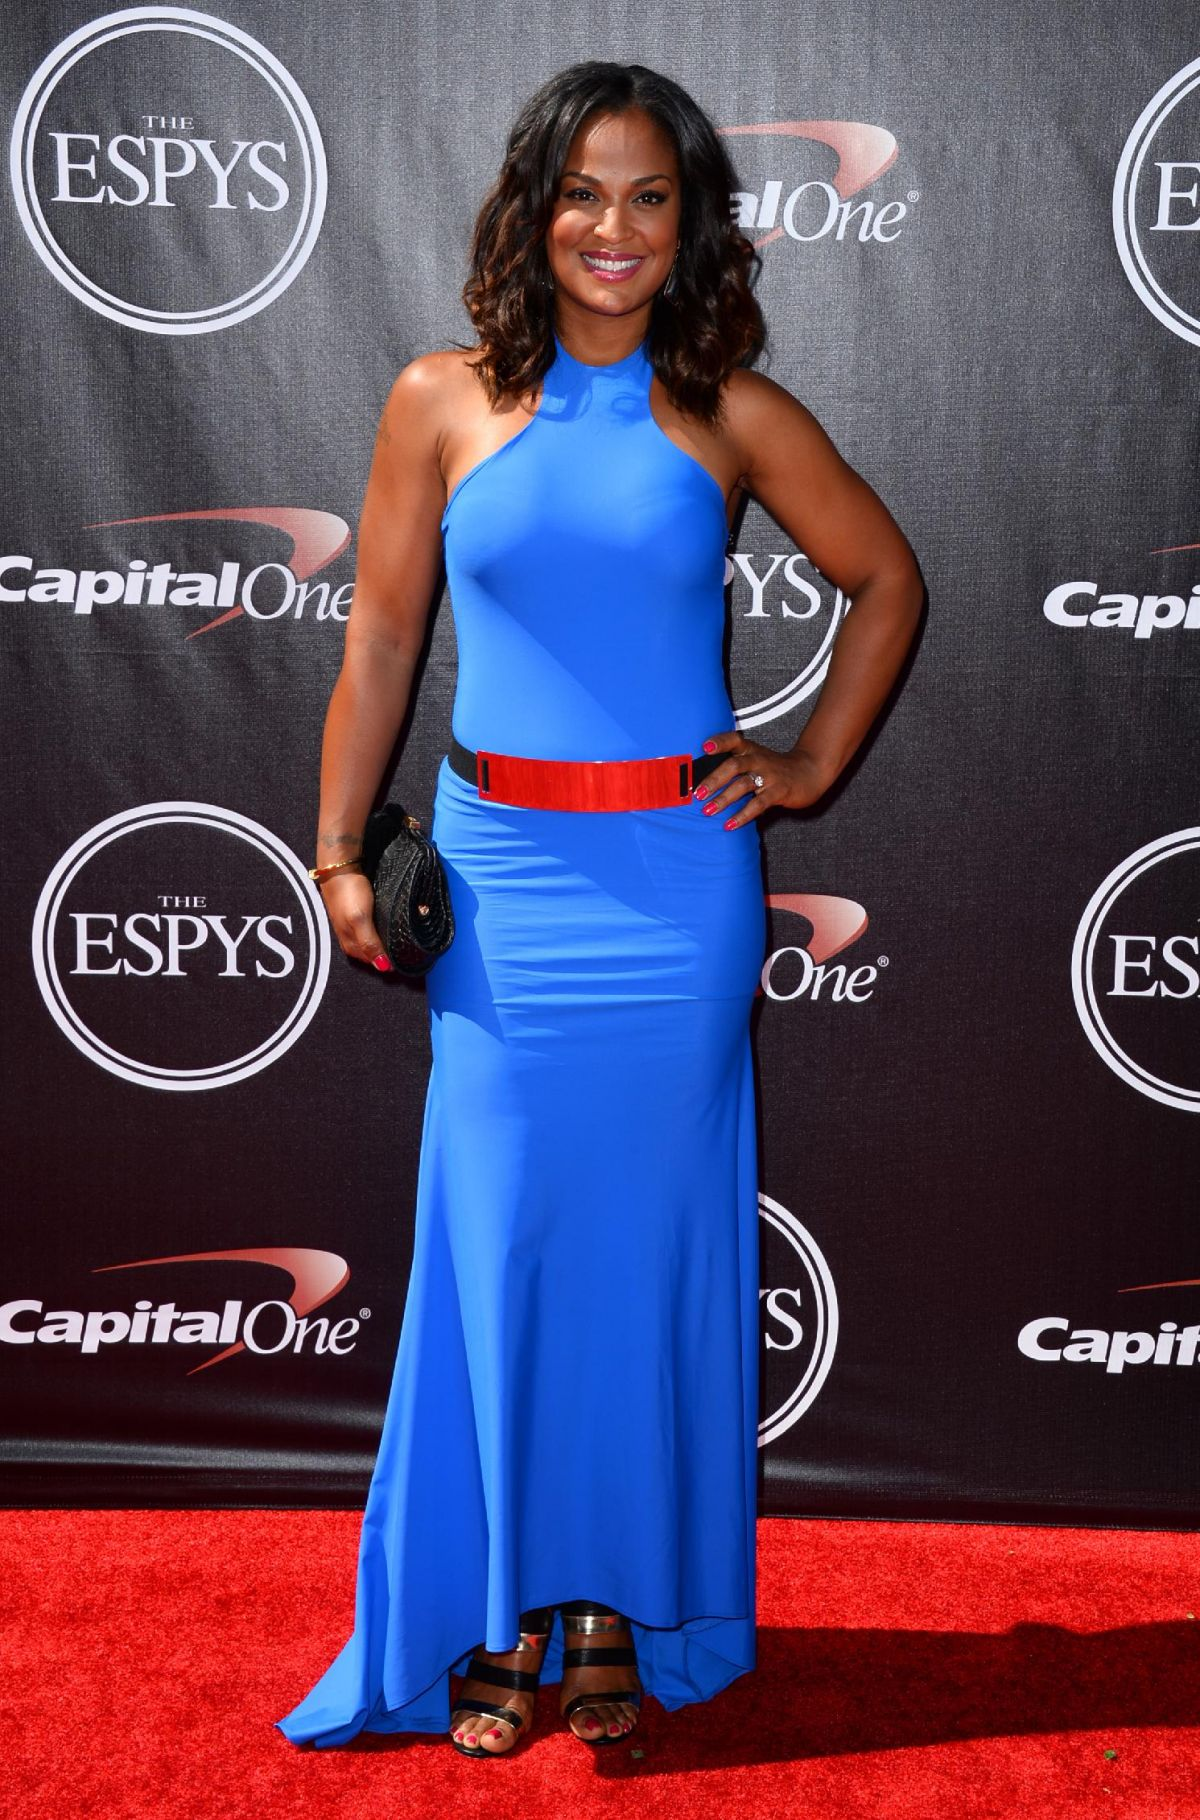 Laila Ali on Red Carpet